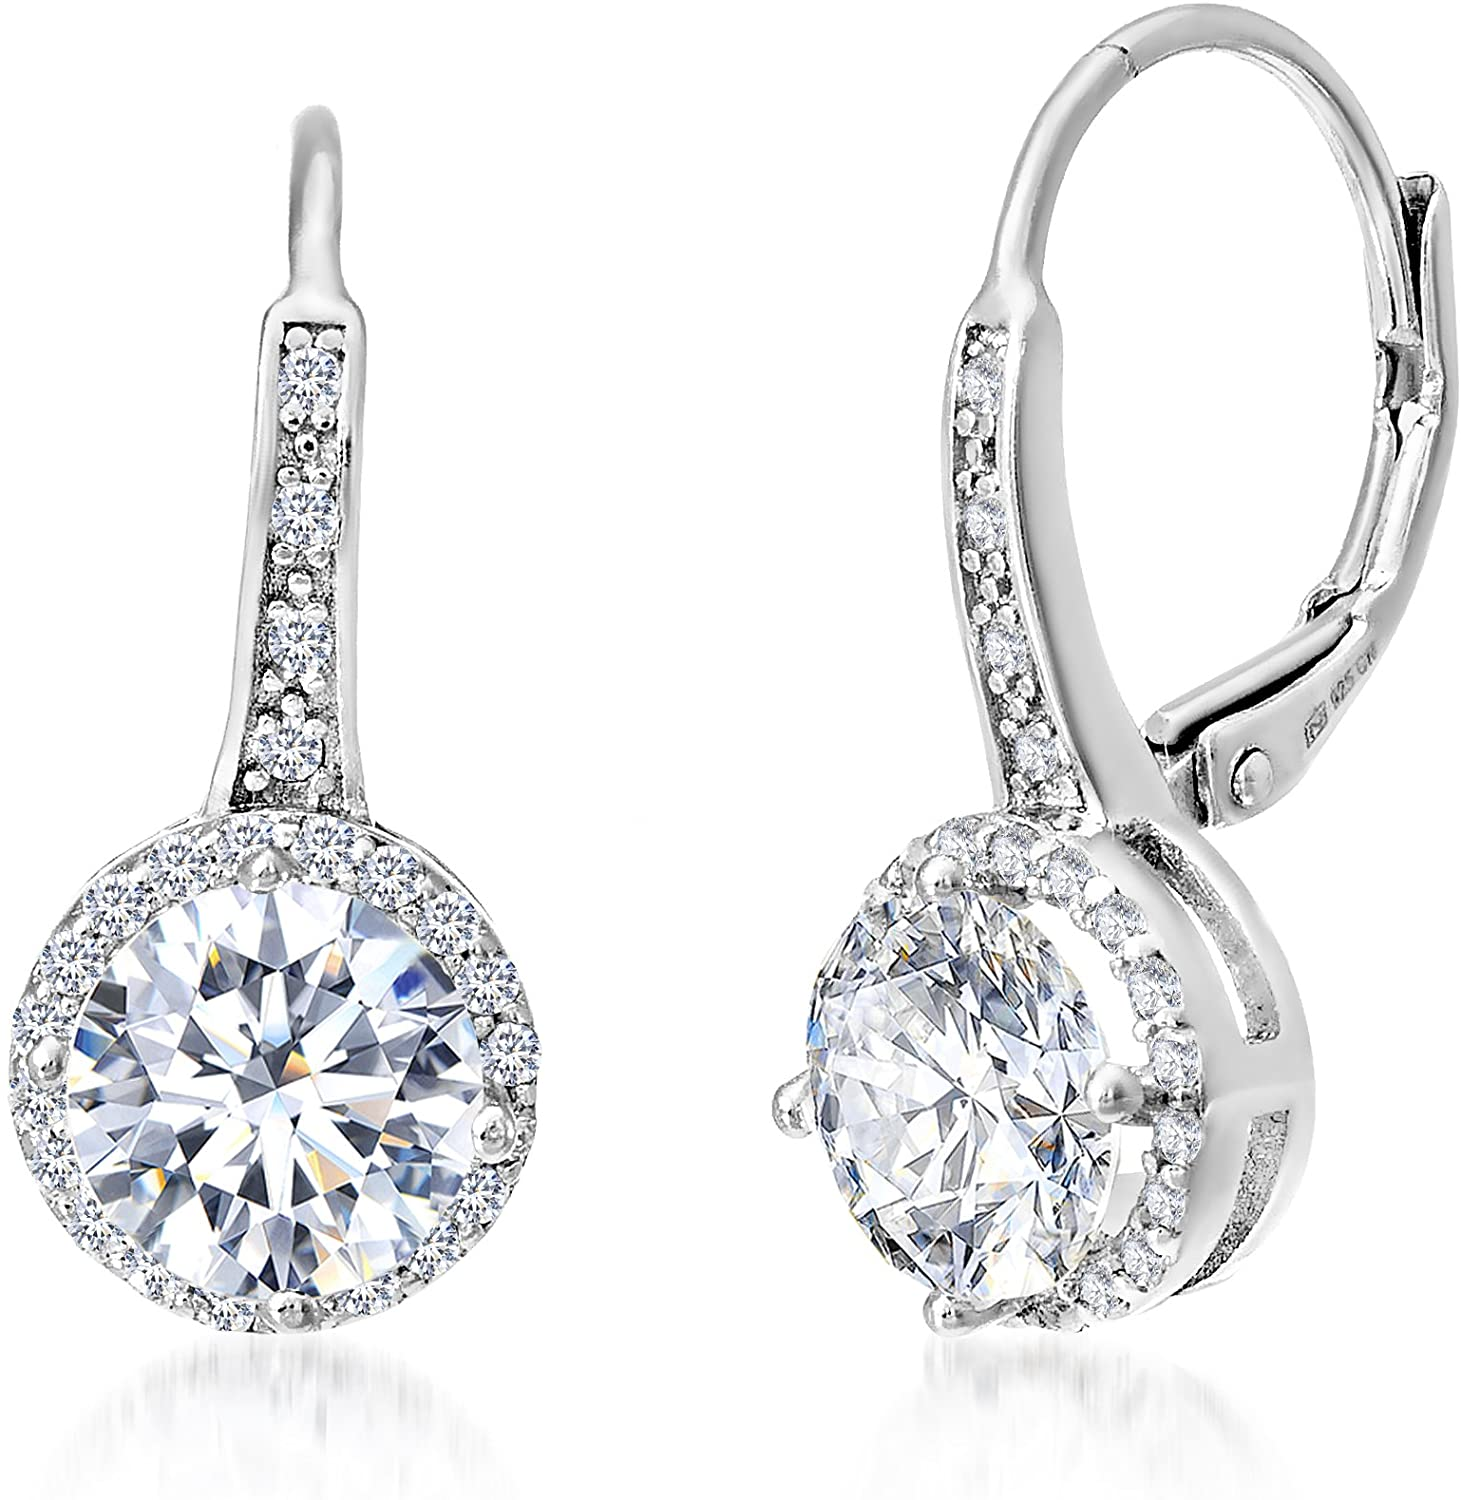 MIA SARINE Sterling Silver Cubic Zirconia Halo Leverback Dangle Bridal Earrings for Women